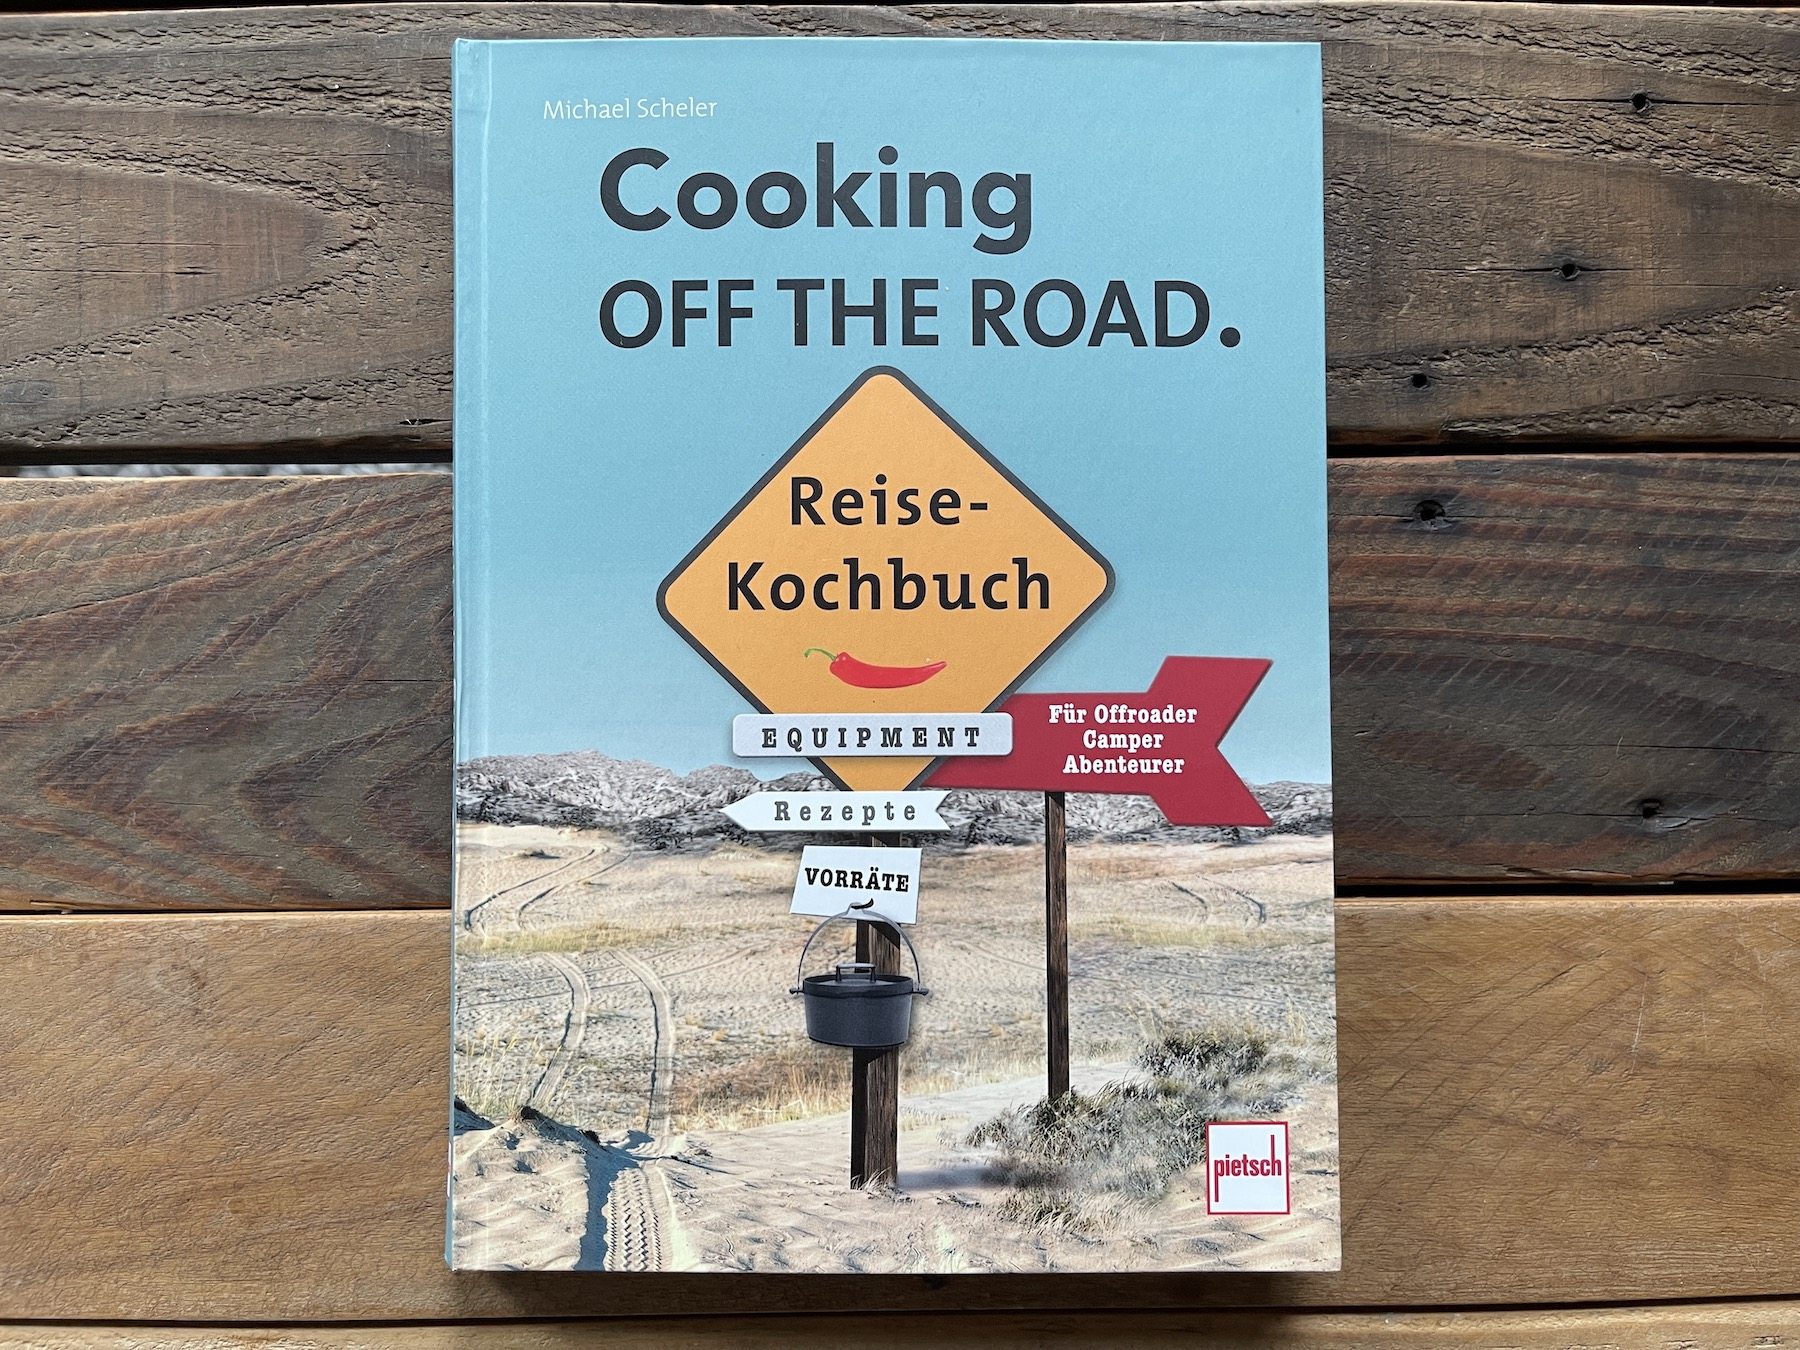 Reisekochbuch Michael Scheler Cooking off the road